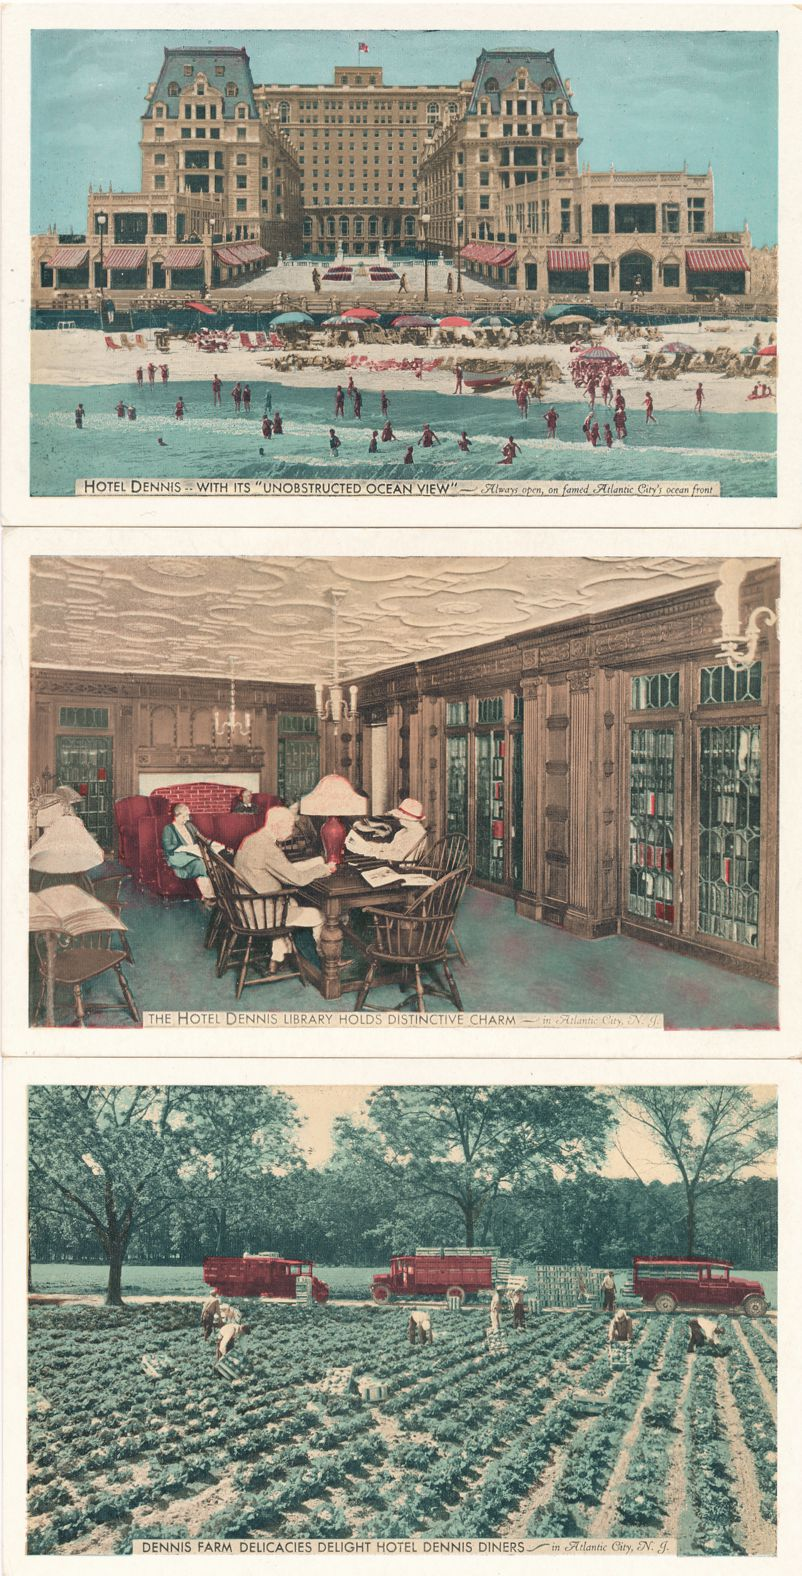 (3 cards) Hotel Dennis, Atlantic City, New Jersey - Waterfront, Library, Vegetable Farm - White Border